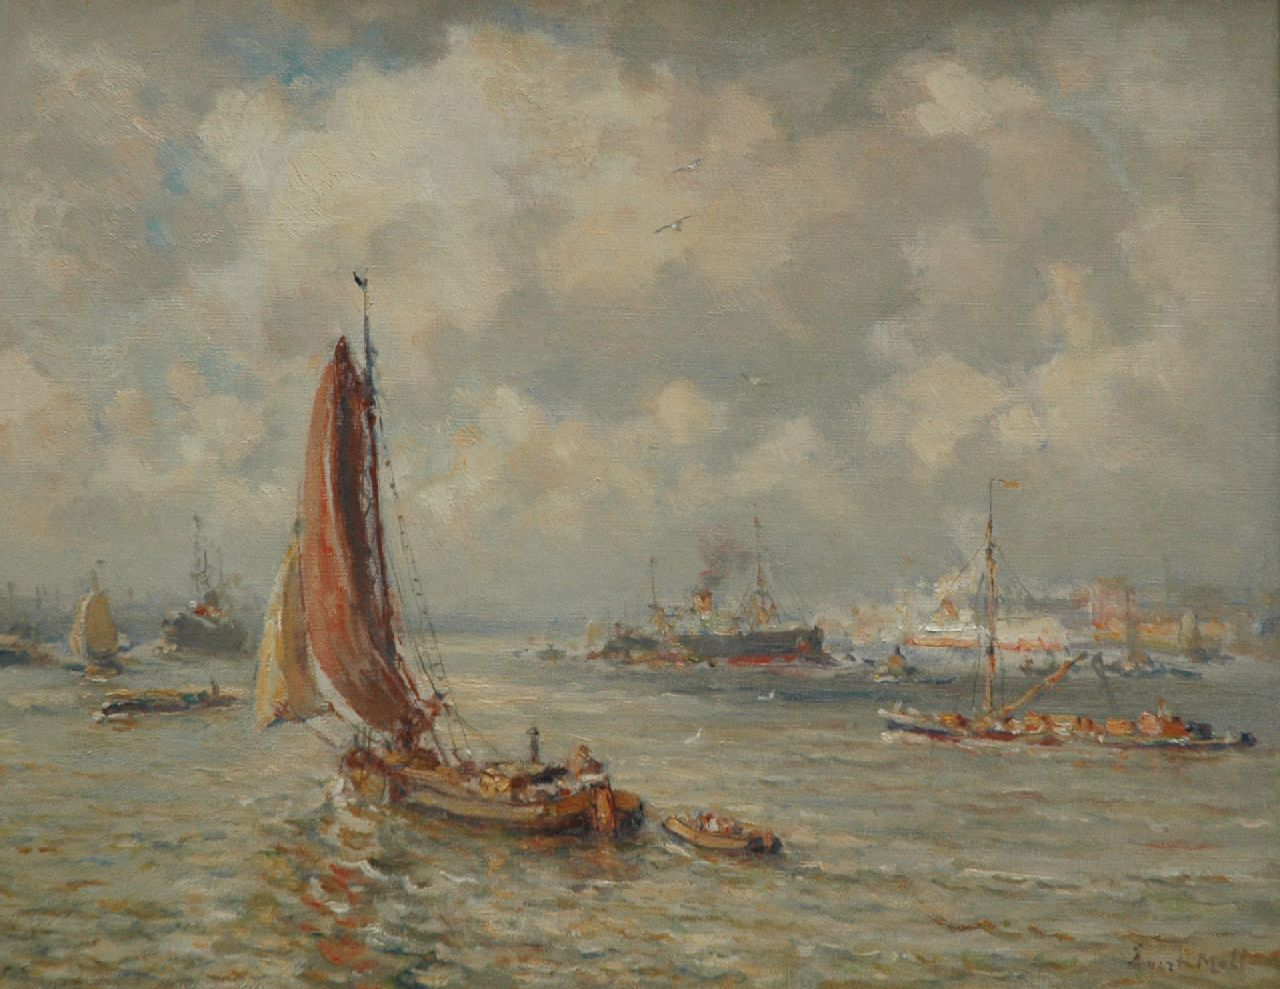 Moll E.  | Evert Moll | Paintings offered for sale | A harbour view of Rotterdam, oil on canvas 40.3 x 50.0 cm, signed l.r.